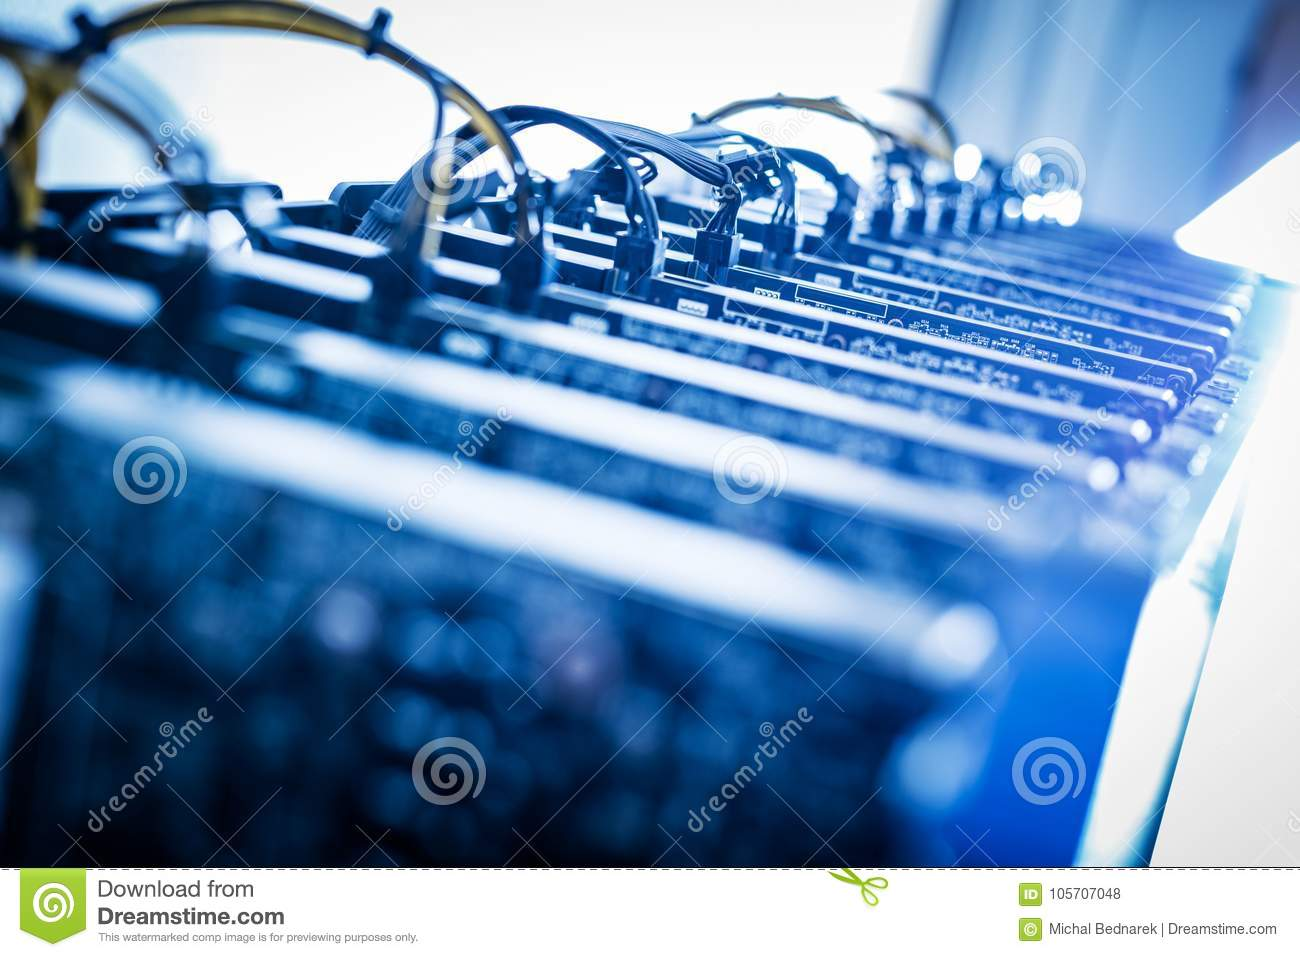 Bitcoin Miners Standing In A Row  Stock Photo - Image of mining